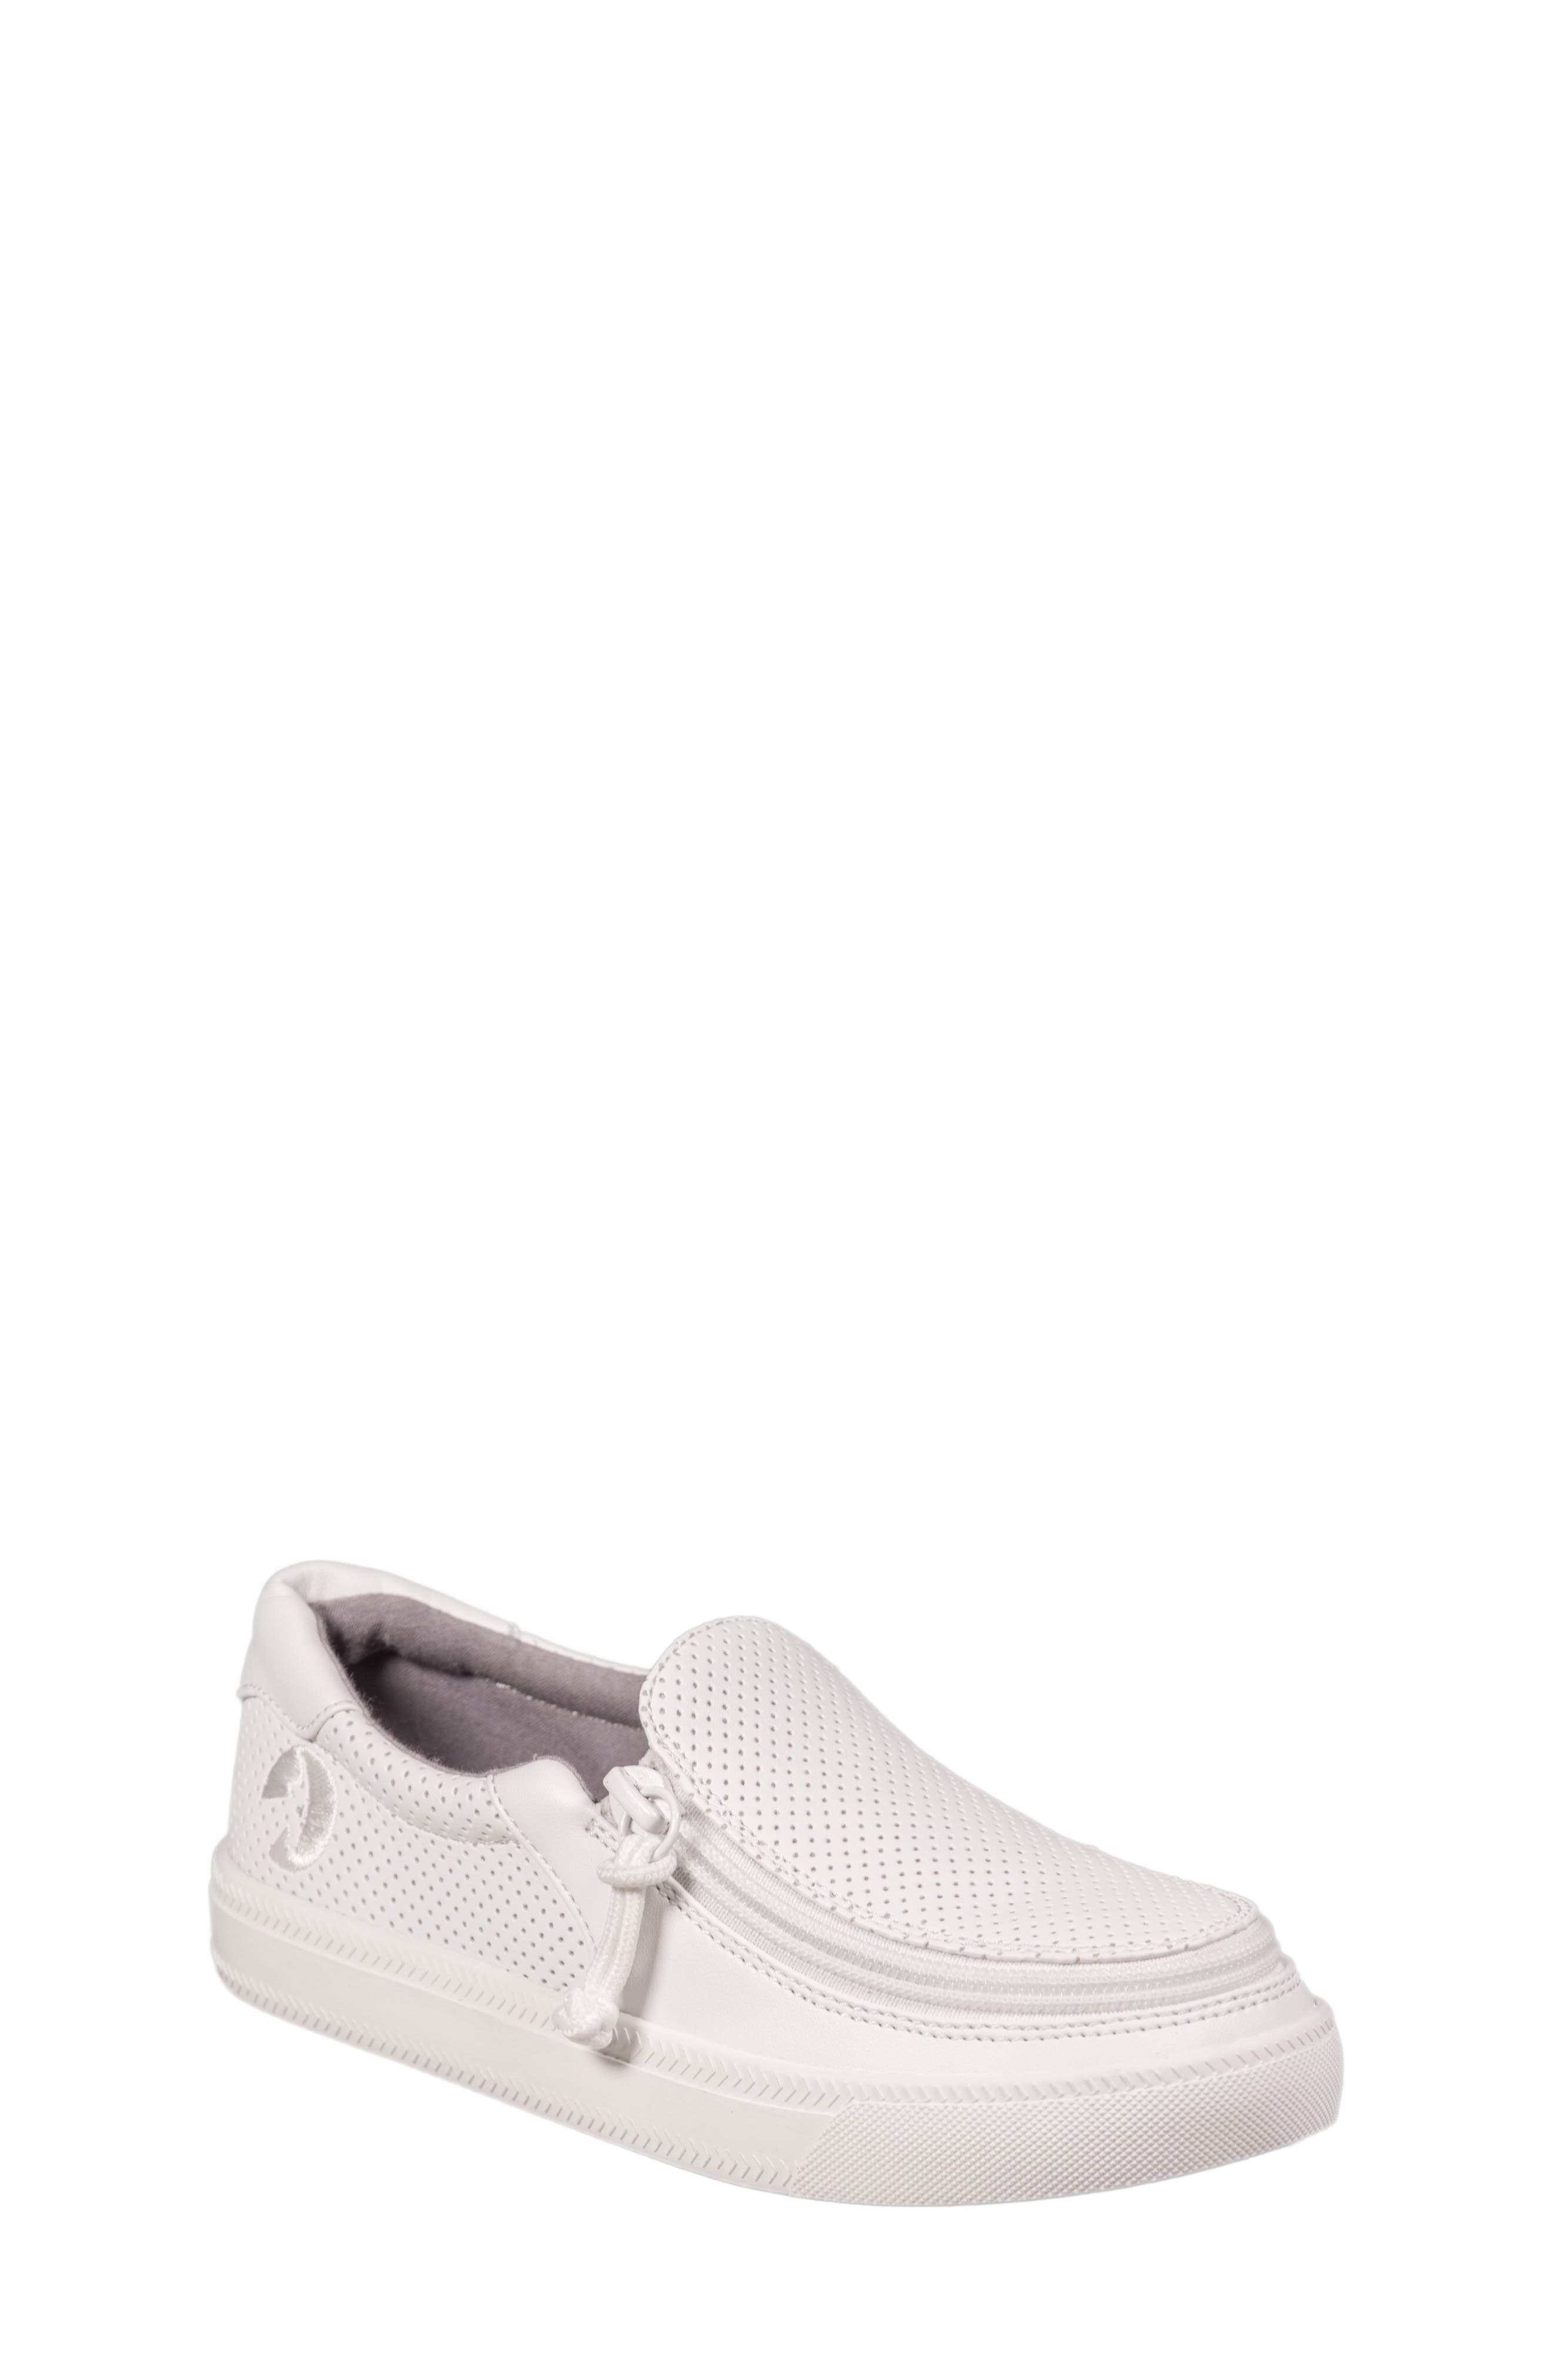 BILLY Footwear Zip Around Perforated Low Top Sneaker (Toddler, Little Kid & Big Kid)